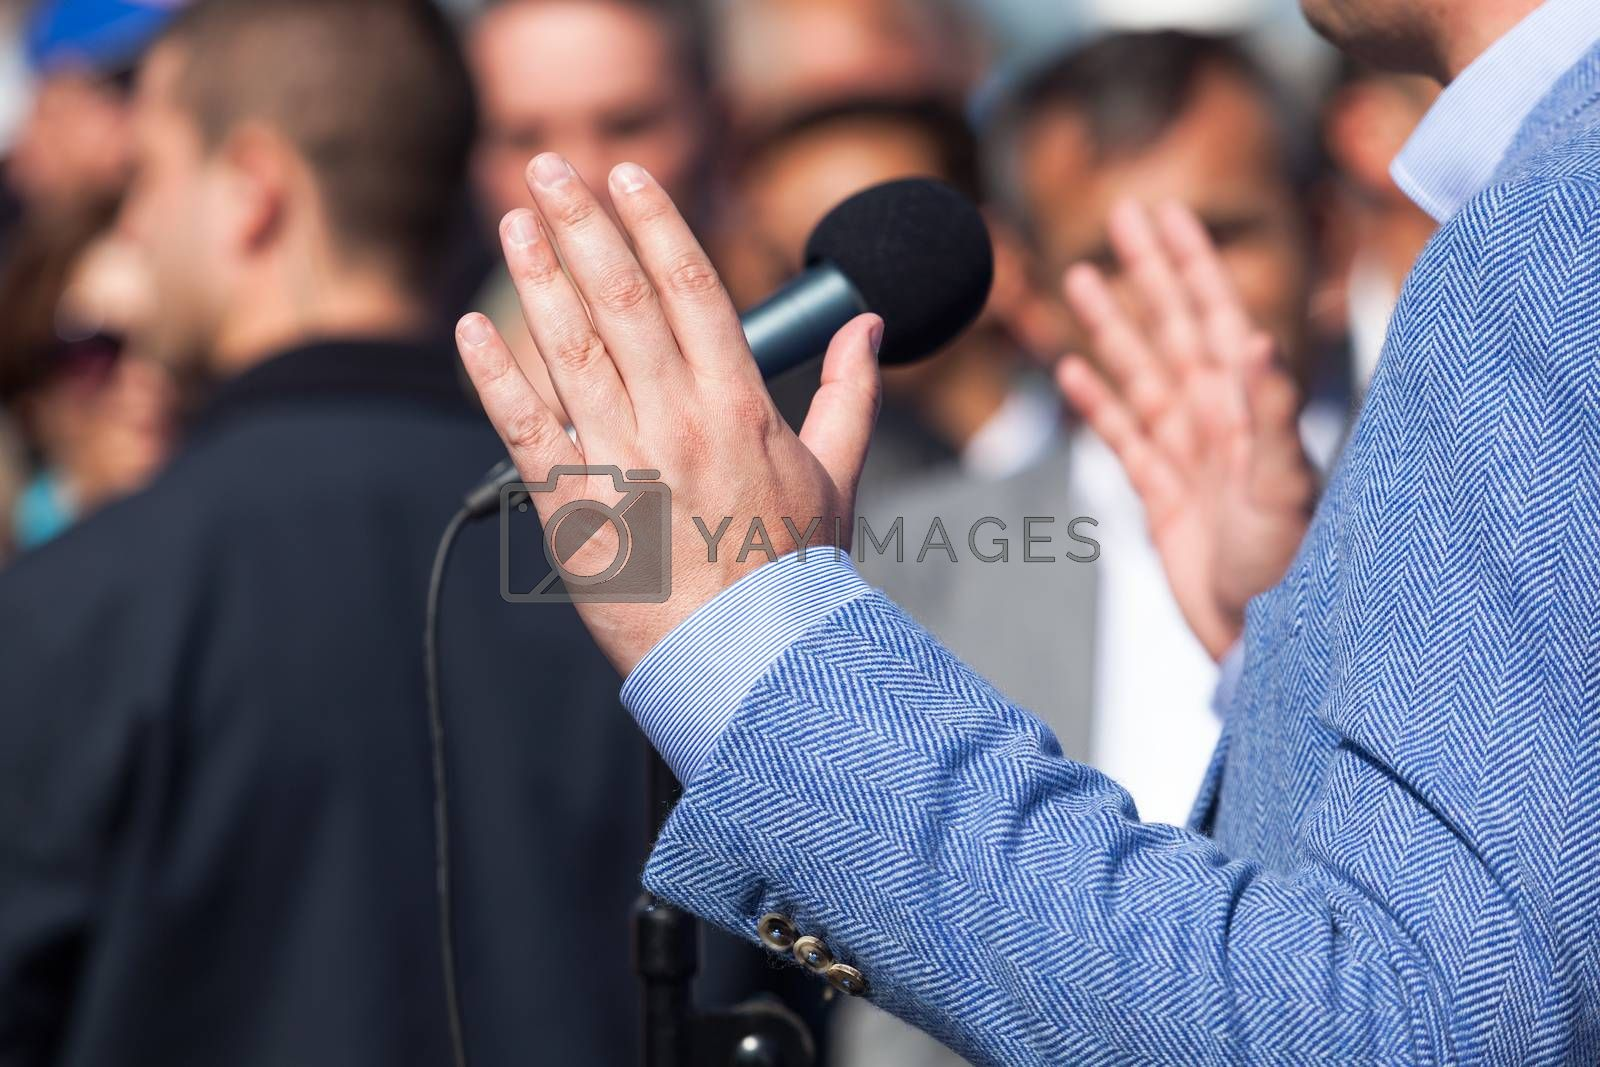 Politician or businessman speech by wellphoto